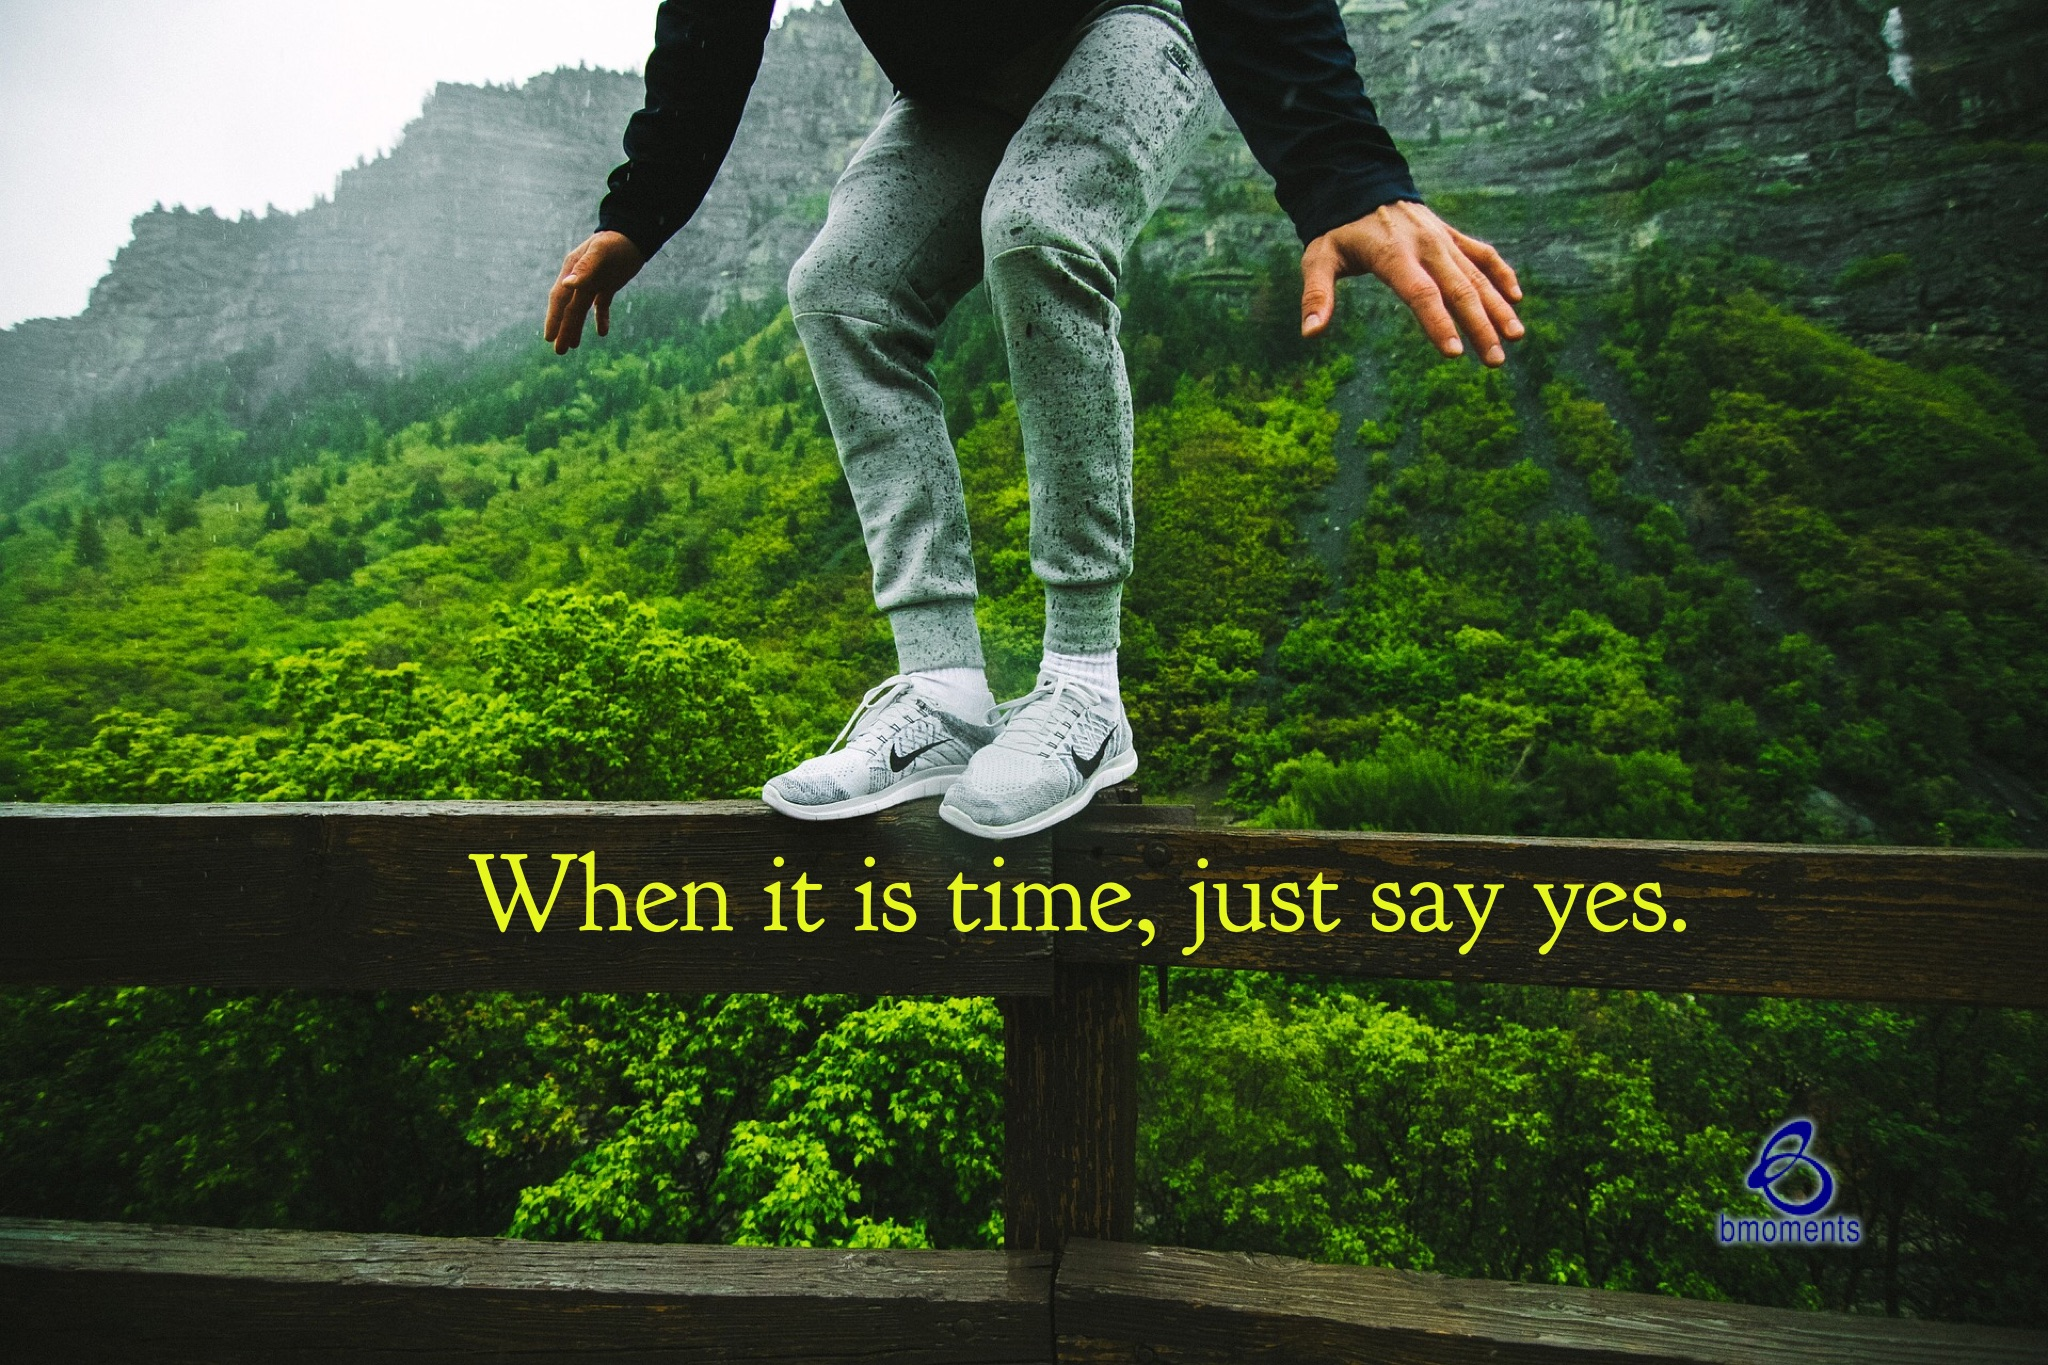 B Moments, Timing, Procrastination, just say yes, do it